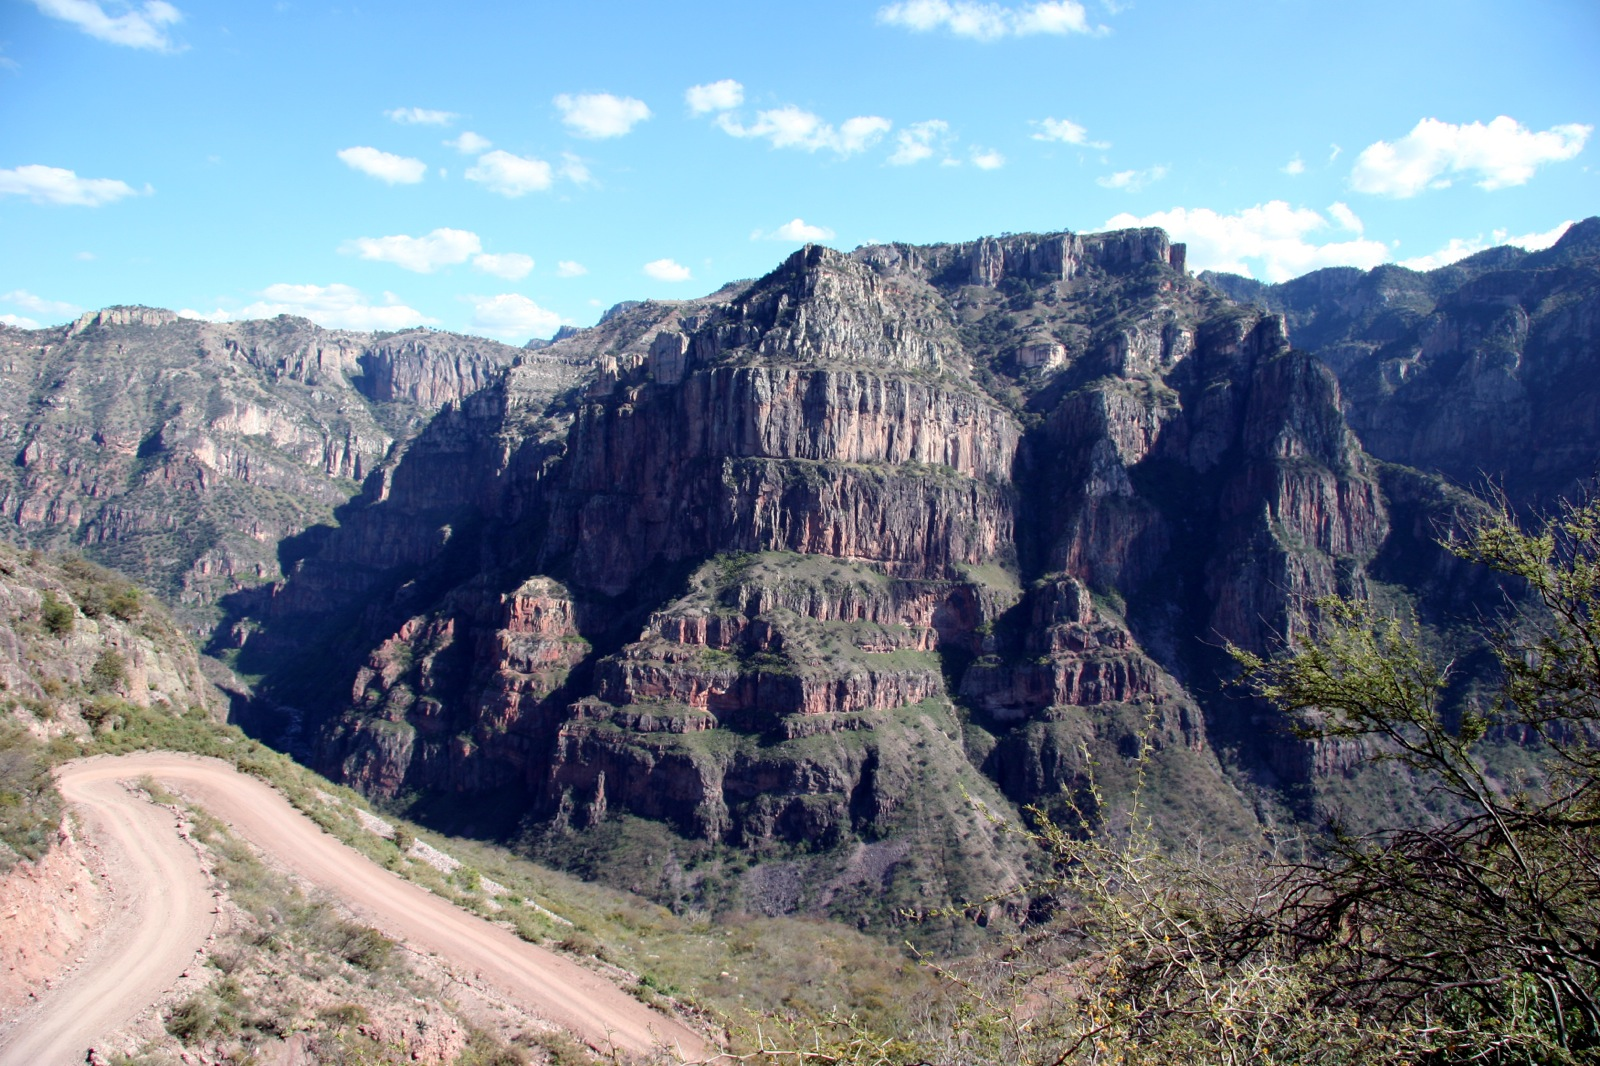 A view of Wedding Cake Mountain and the switchback roads during Mexico's Copper Canyon Trek.